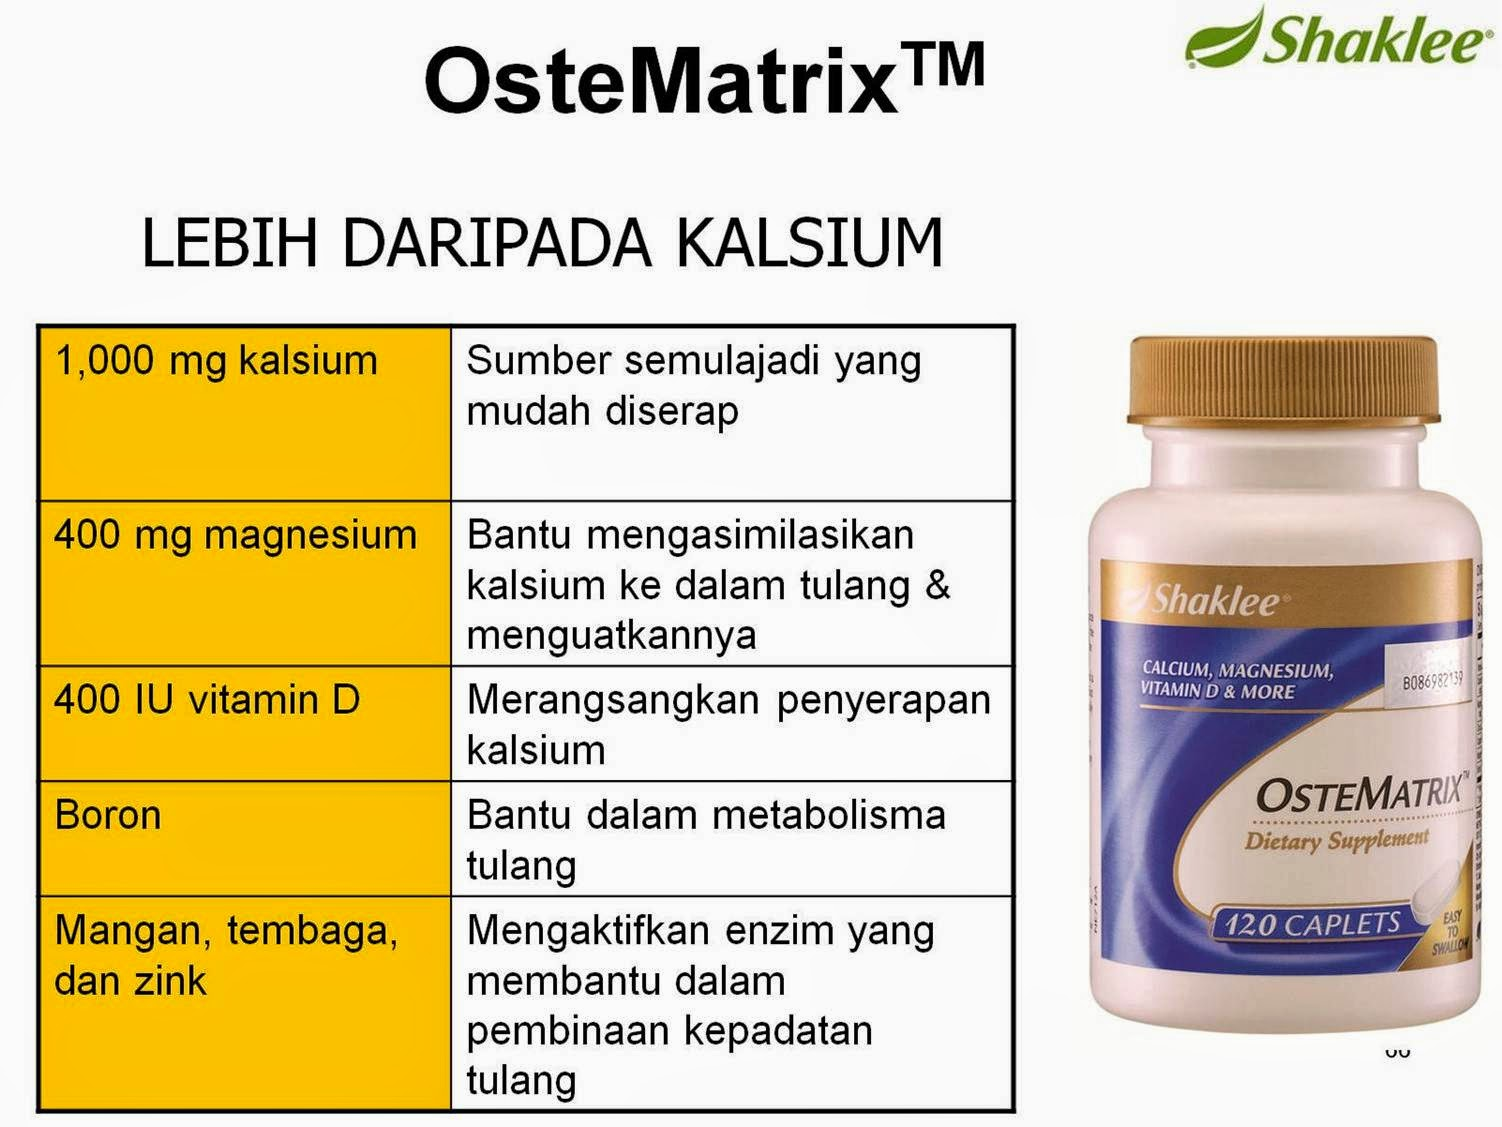 OSTEMATRIX SI PENGUAT TULANG ANDA